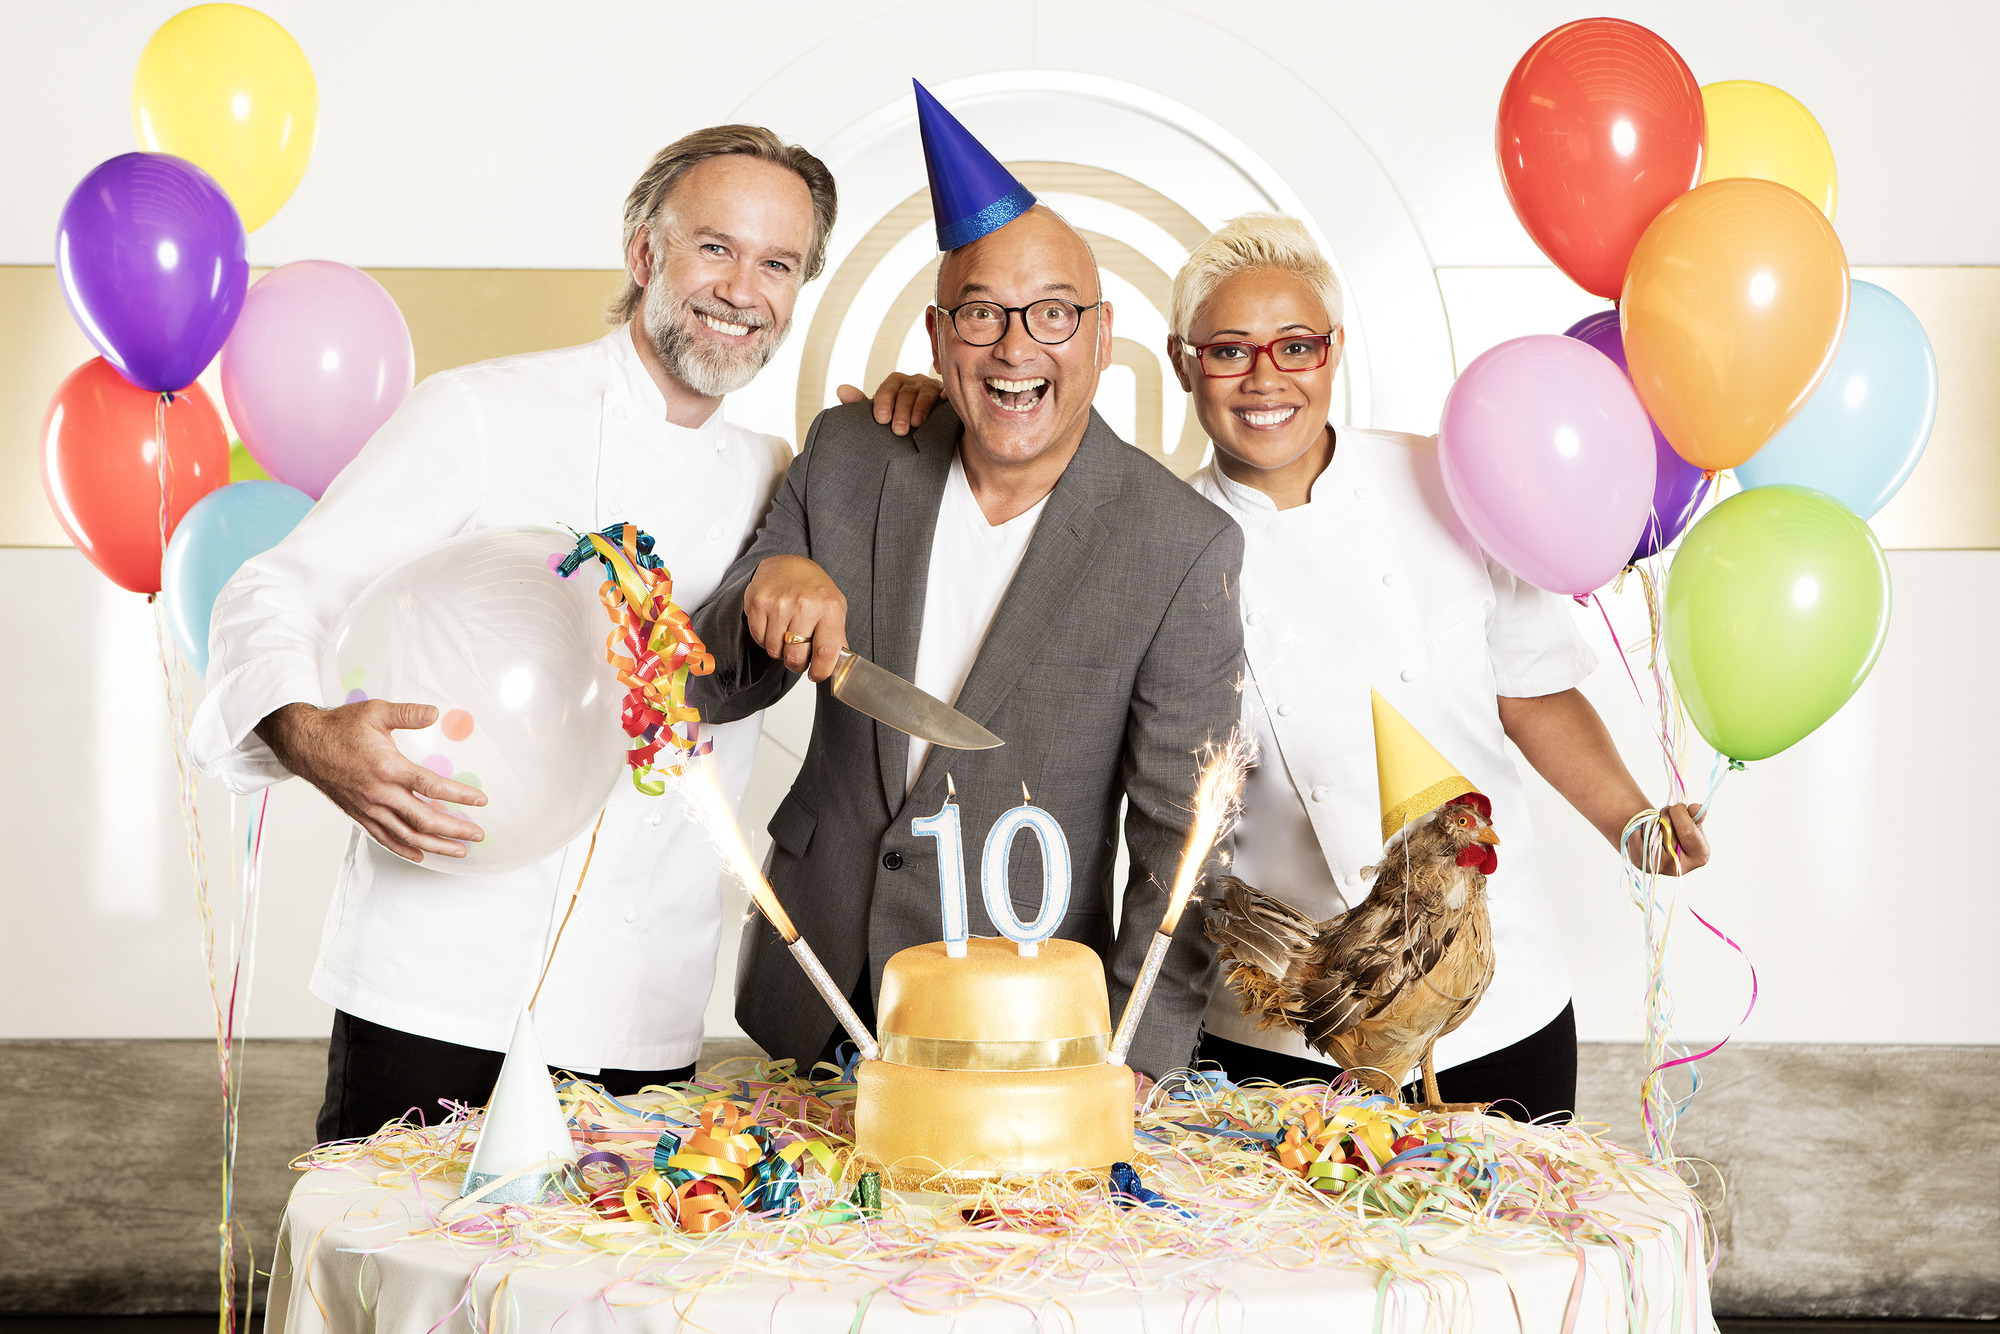 WARNING: Embargoed for publication until 00:00:01 on 31/10/2017 - Programme Name: Masterchef: The Professionals - TX: n/a - Episode: n/a (No. n/a) - Picture Shows: (L-R) Marcus Wareing, Gregg Wallace, Monica Galetti - (C) Shine TV Ltd - Photographer: Production  (BBC, TL)